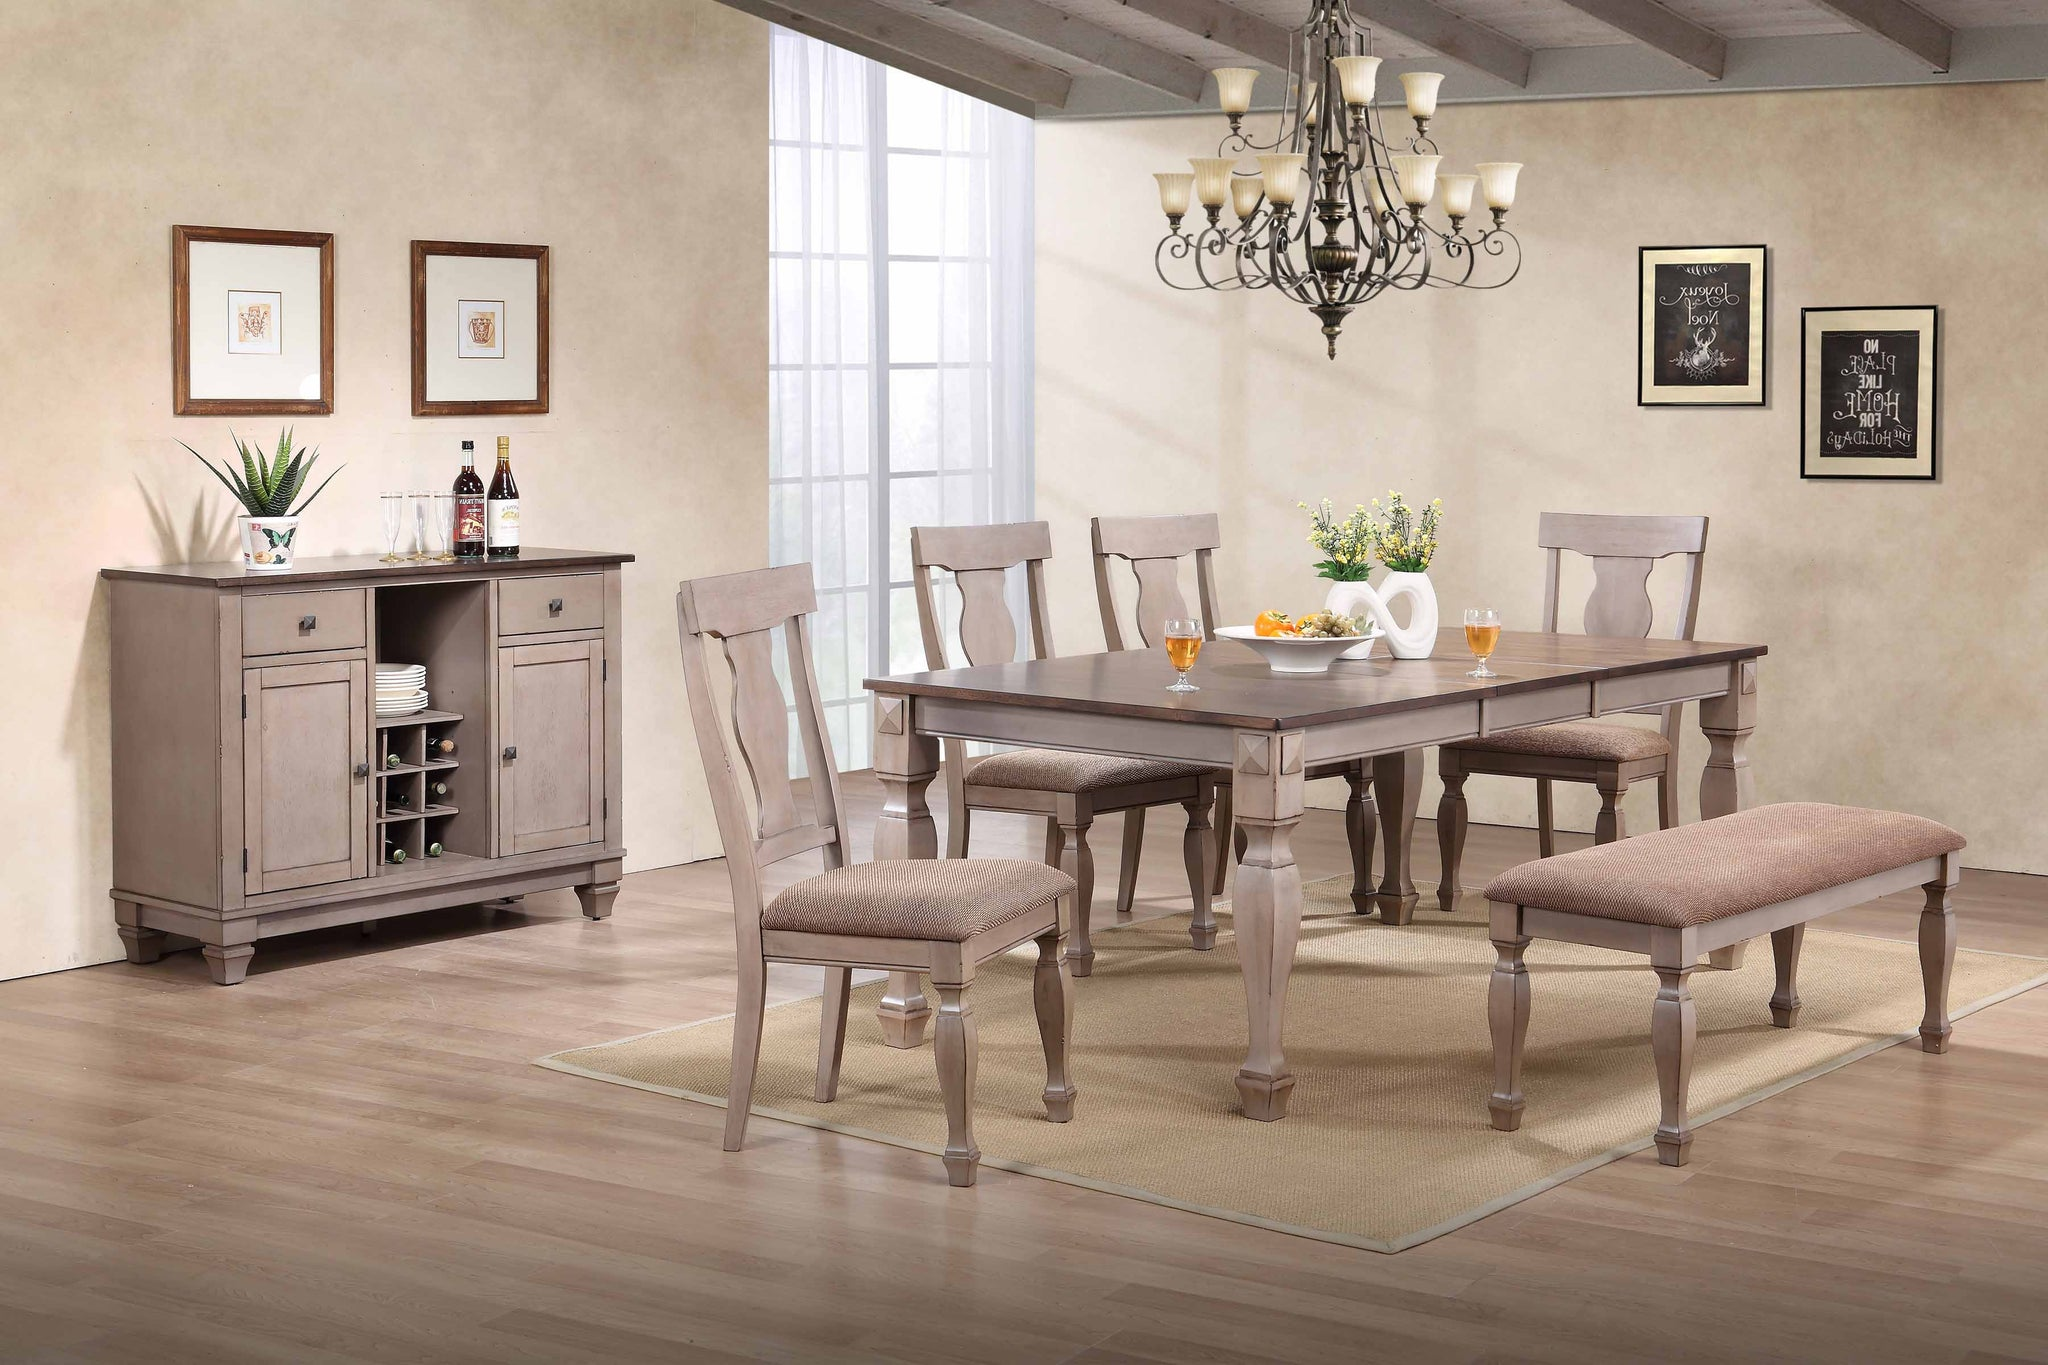 oak east bench com west amazon room table piece kitchen furniture set dp dining w with